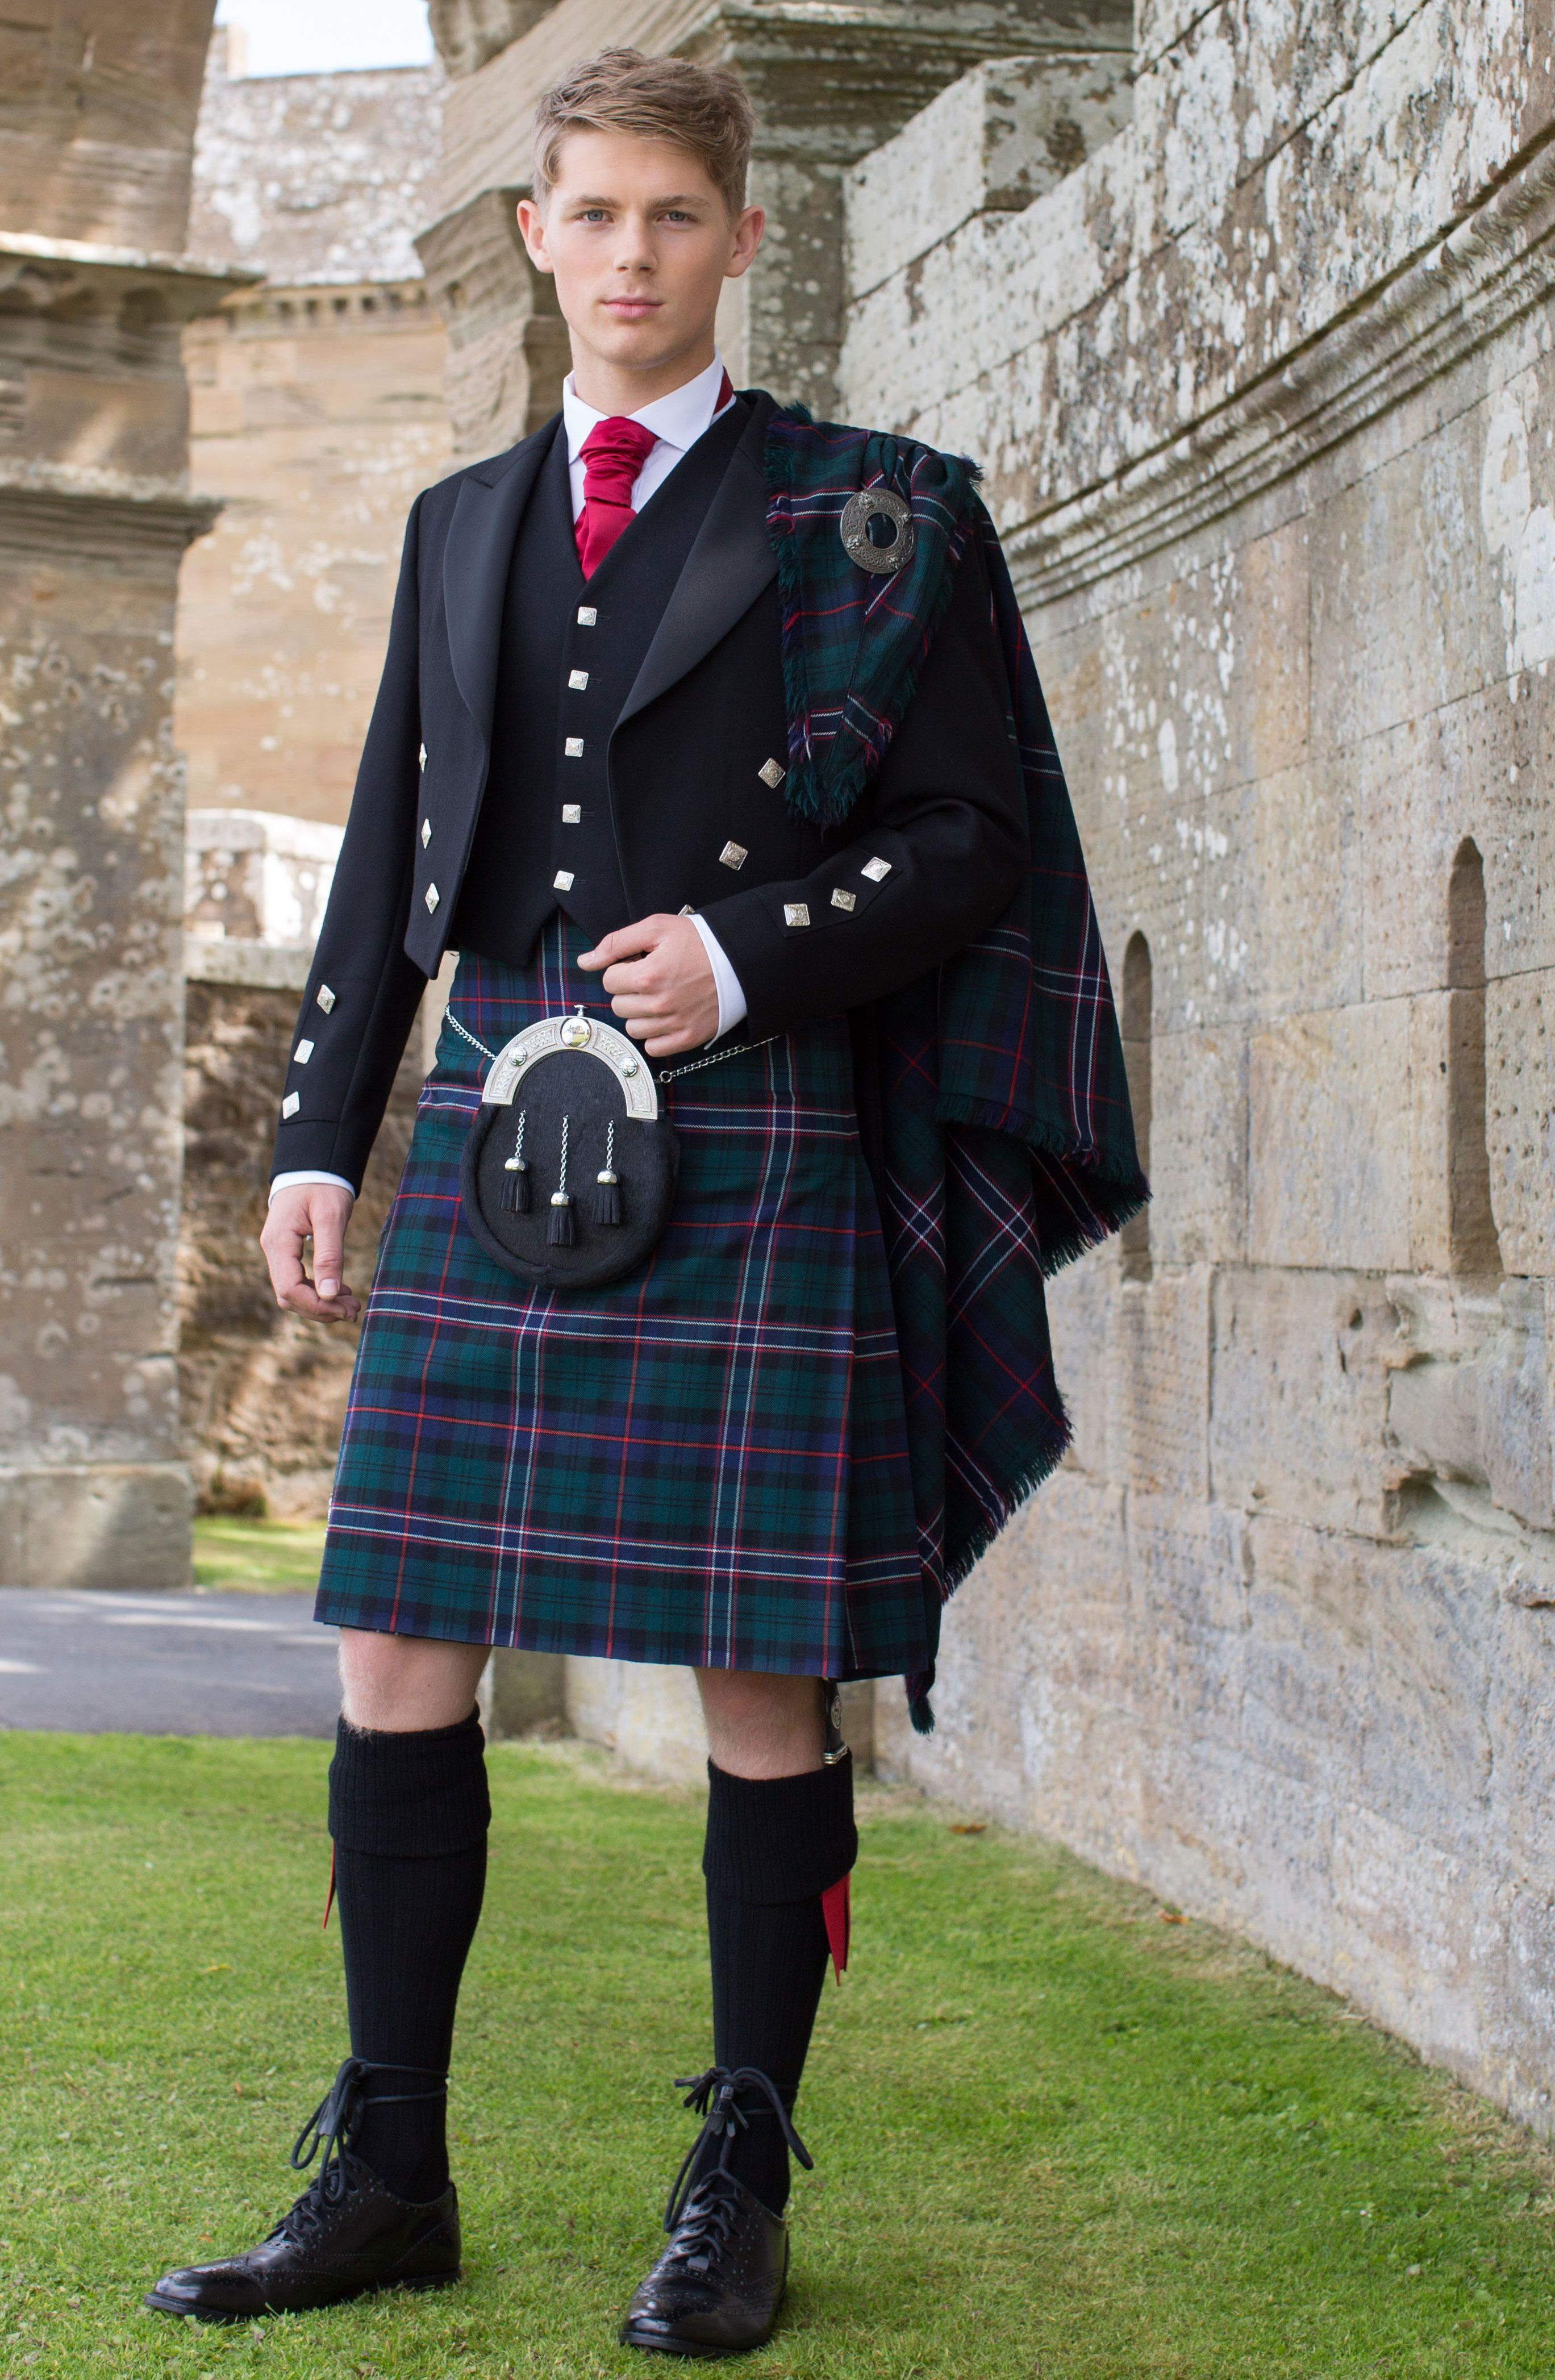 scottish national tartan with prince silver button